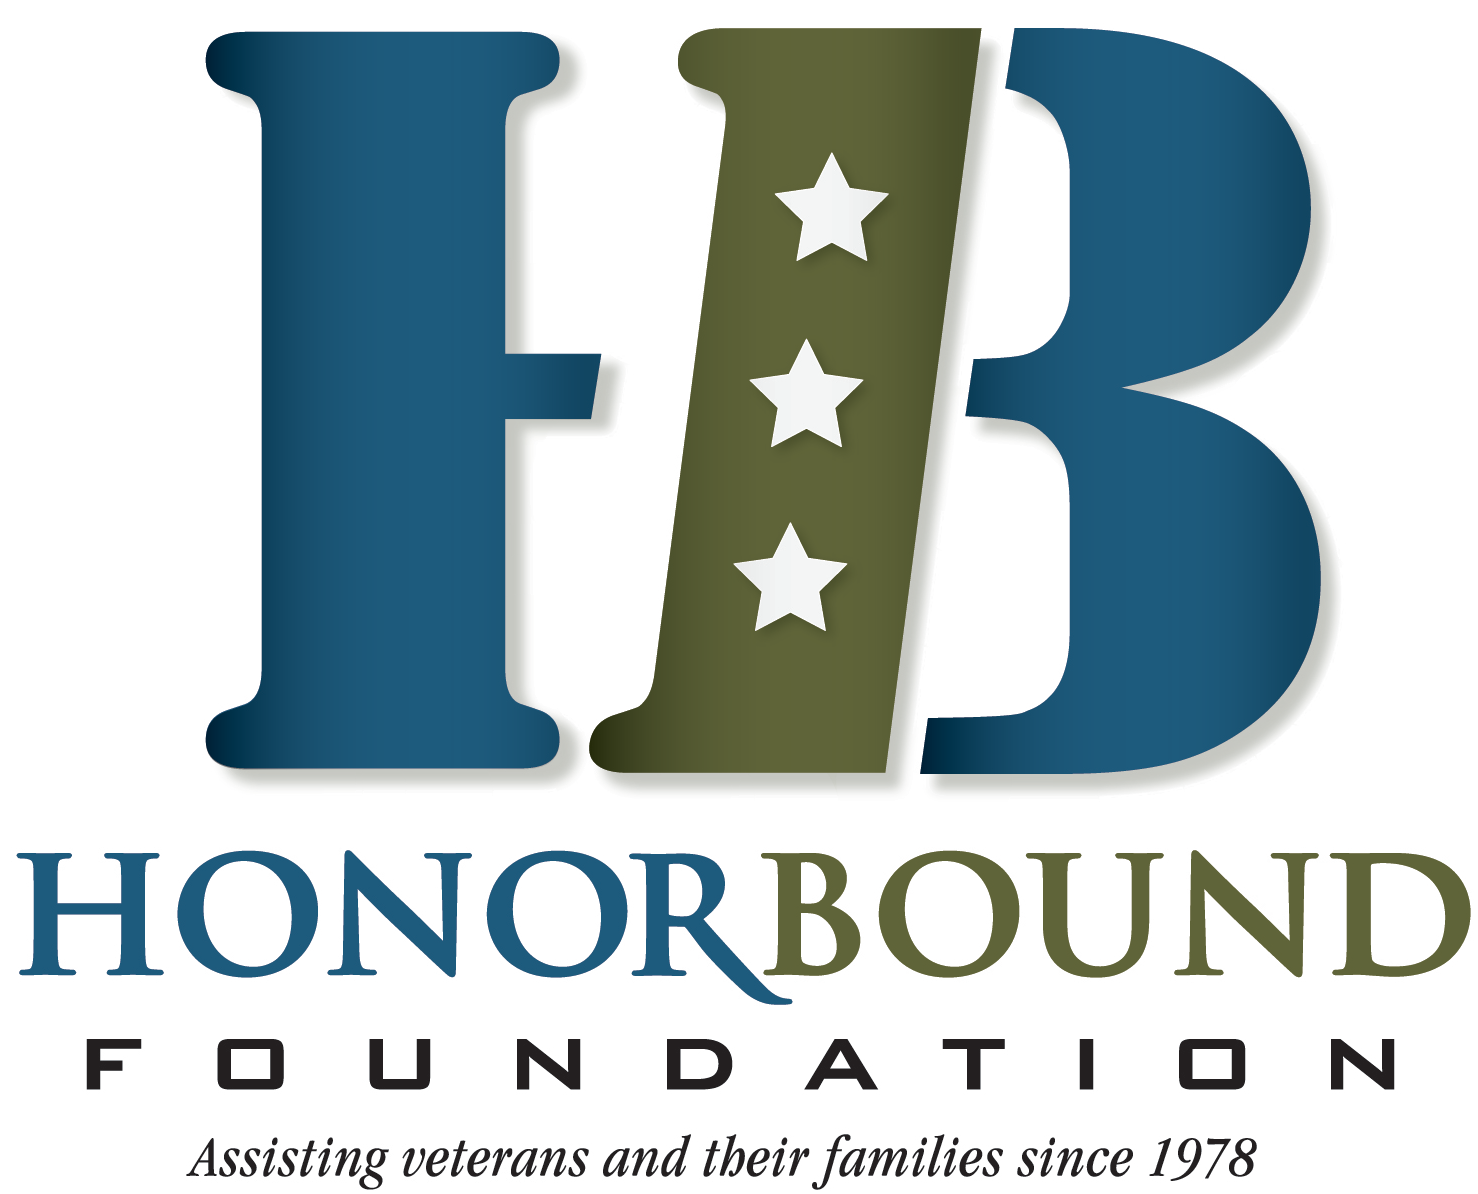 Iowa Car Donations - HonorBound Foundation - DonatecarUSA.com